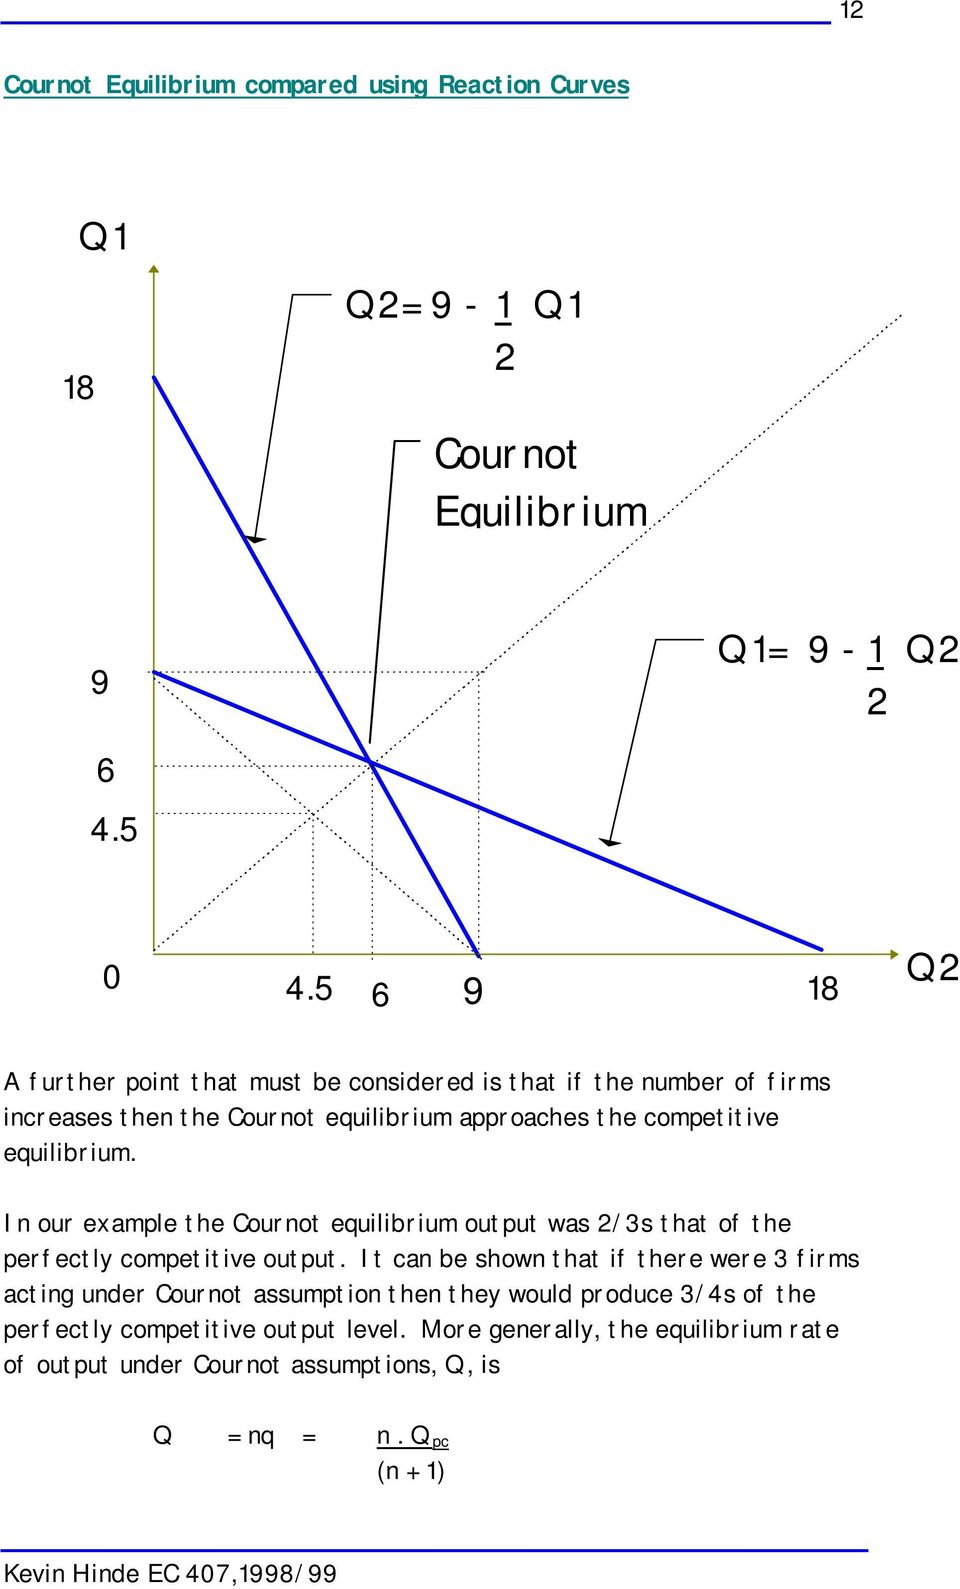 In our example the Cournot equilibrium output was 2/3s that of the perfectly competitive output.